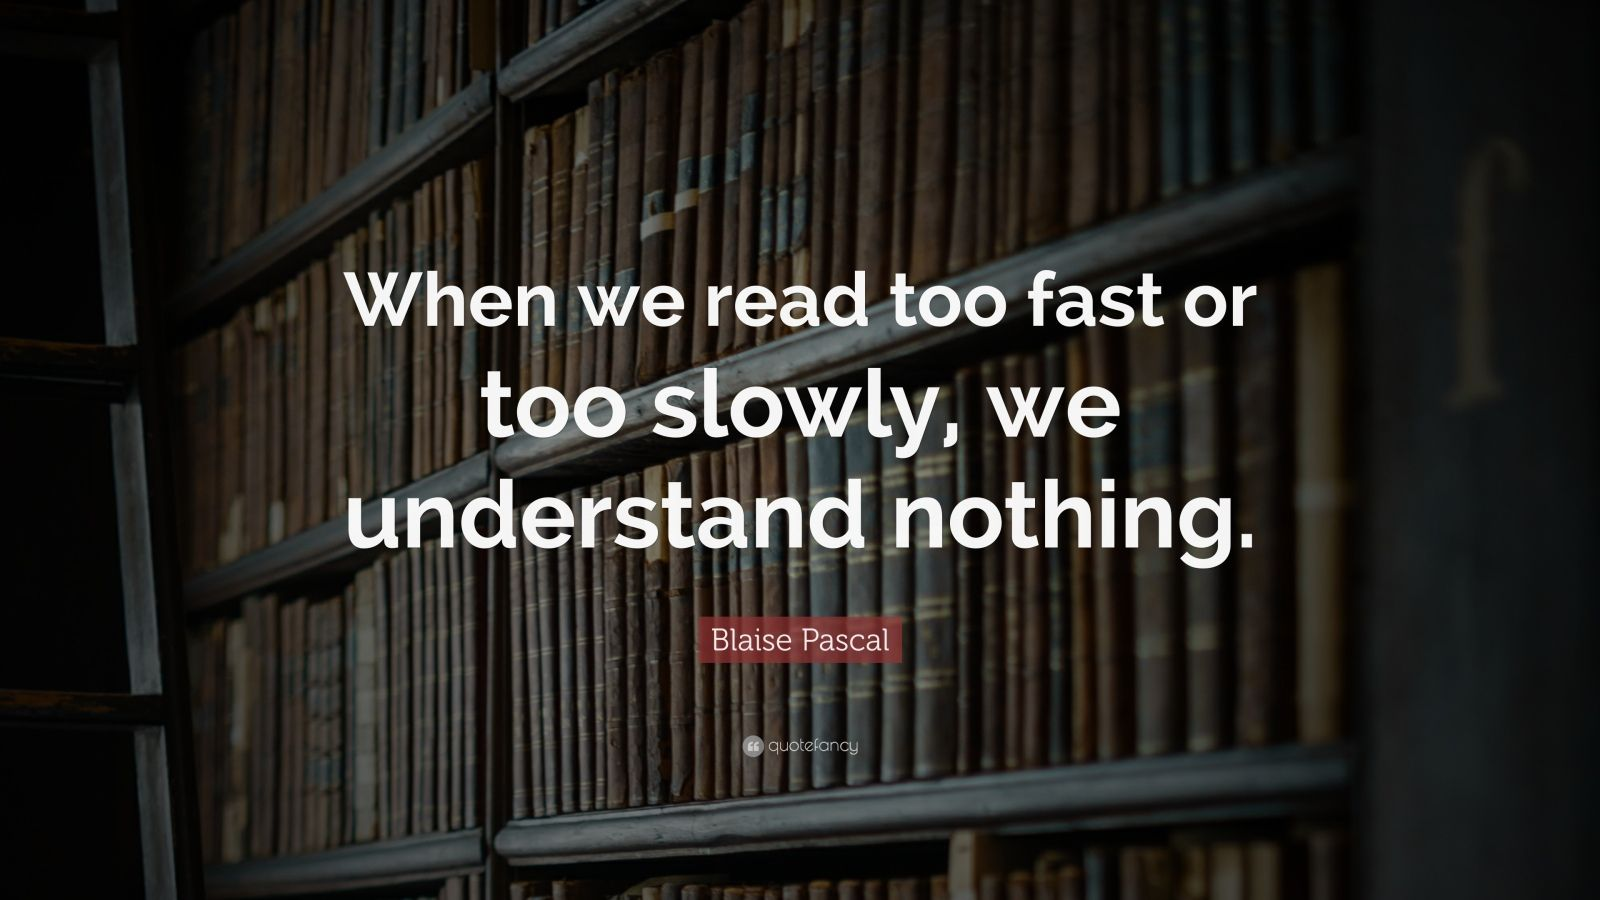 """Blaise Pascal Quote: """"When we read too fast or too slowly, we understand nothing."""""""